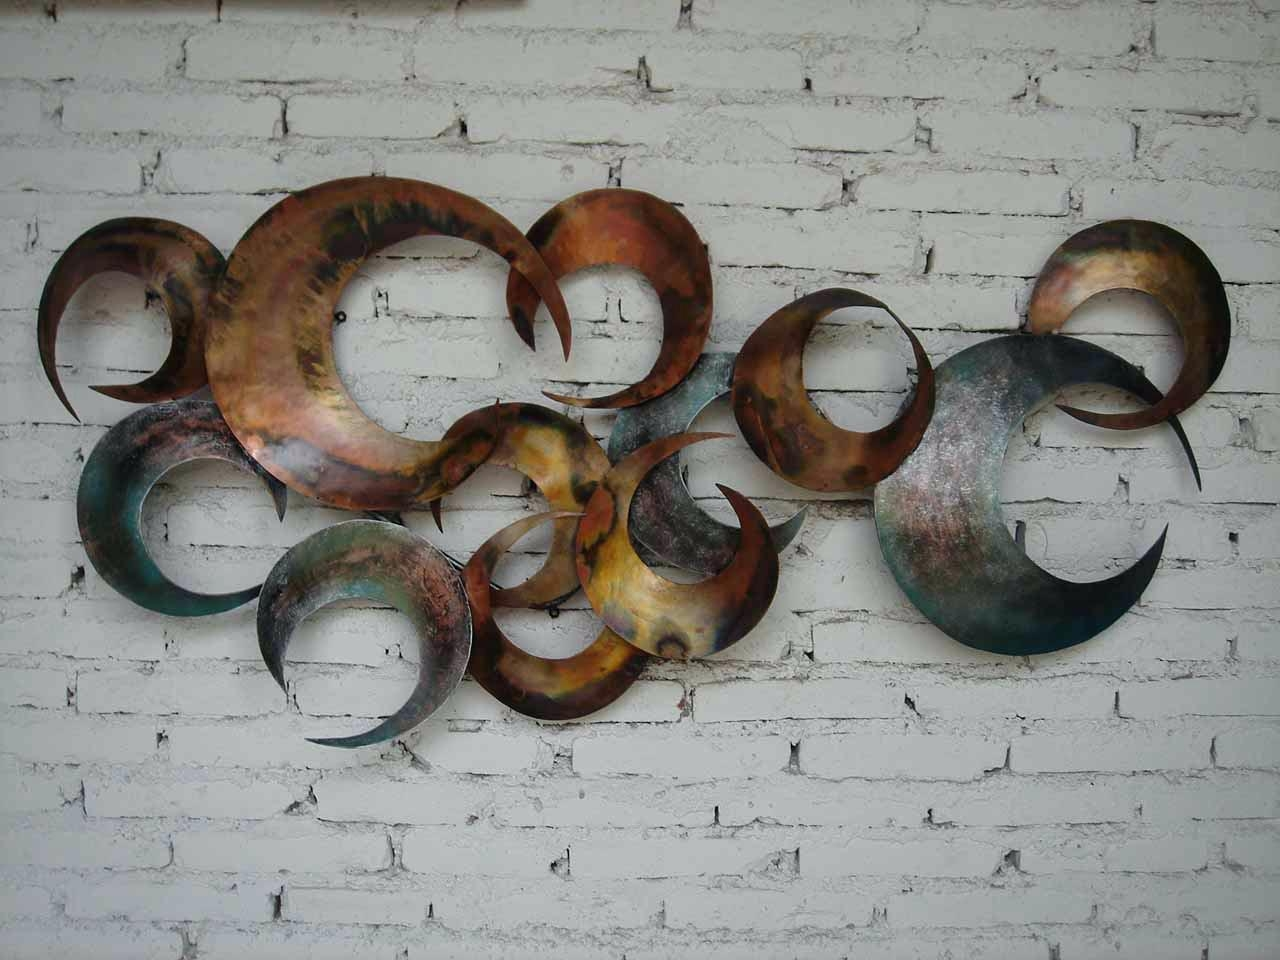 Wall Ideas : Contemporary Metal Sculpture Wall Art Radiance Inside Contemporary Metal Wall Art Sculpture (View 20 of 20)